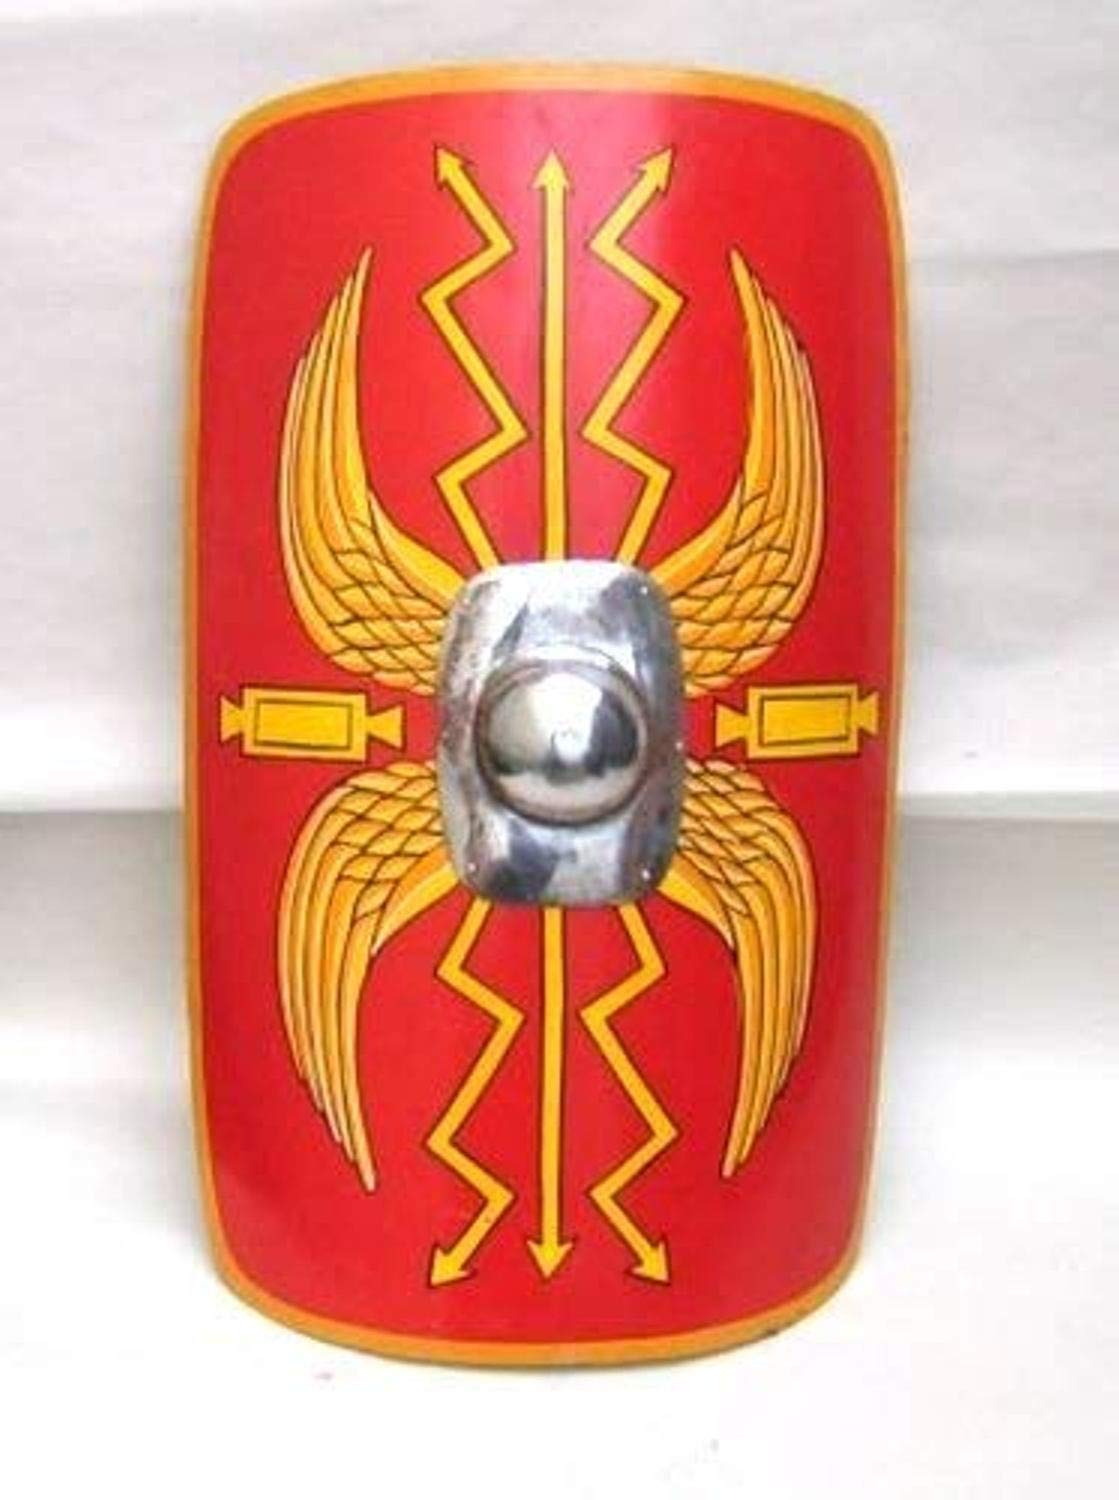 THORINSTRUMENTS (with device) Fully Fucntional 35'' Medieval Roman Armour Legion Scutum Shield SCA LARP Costume